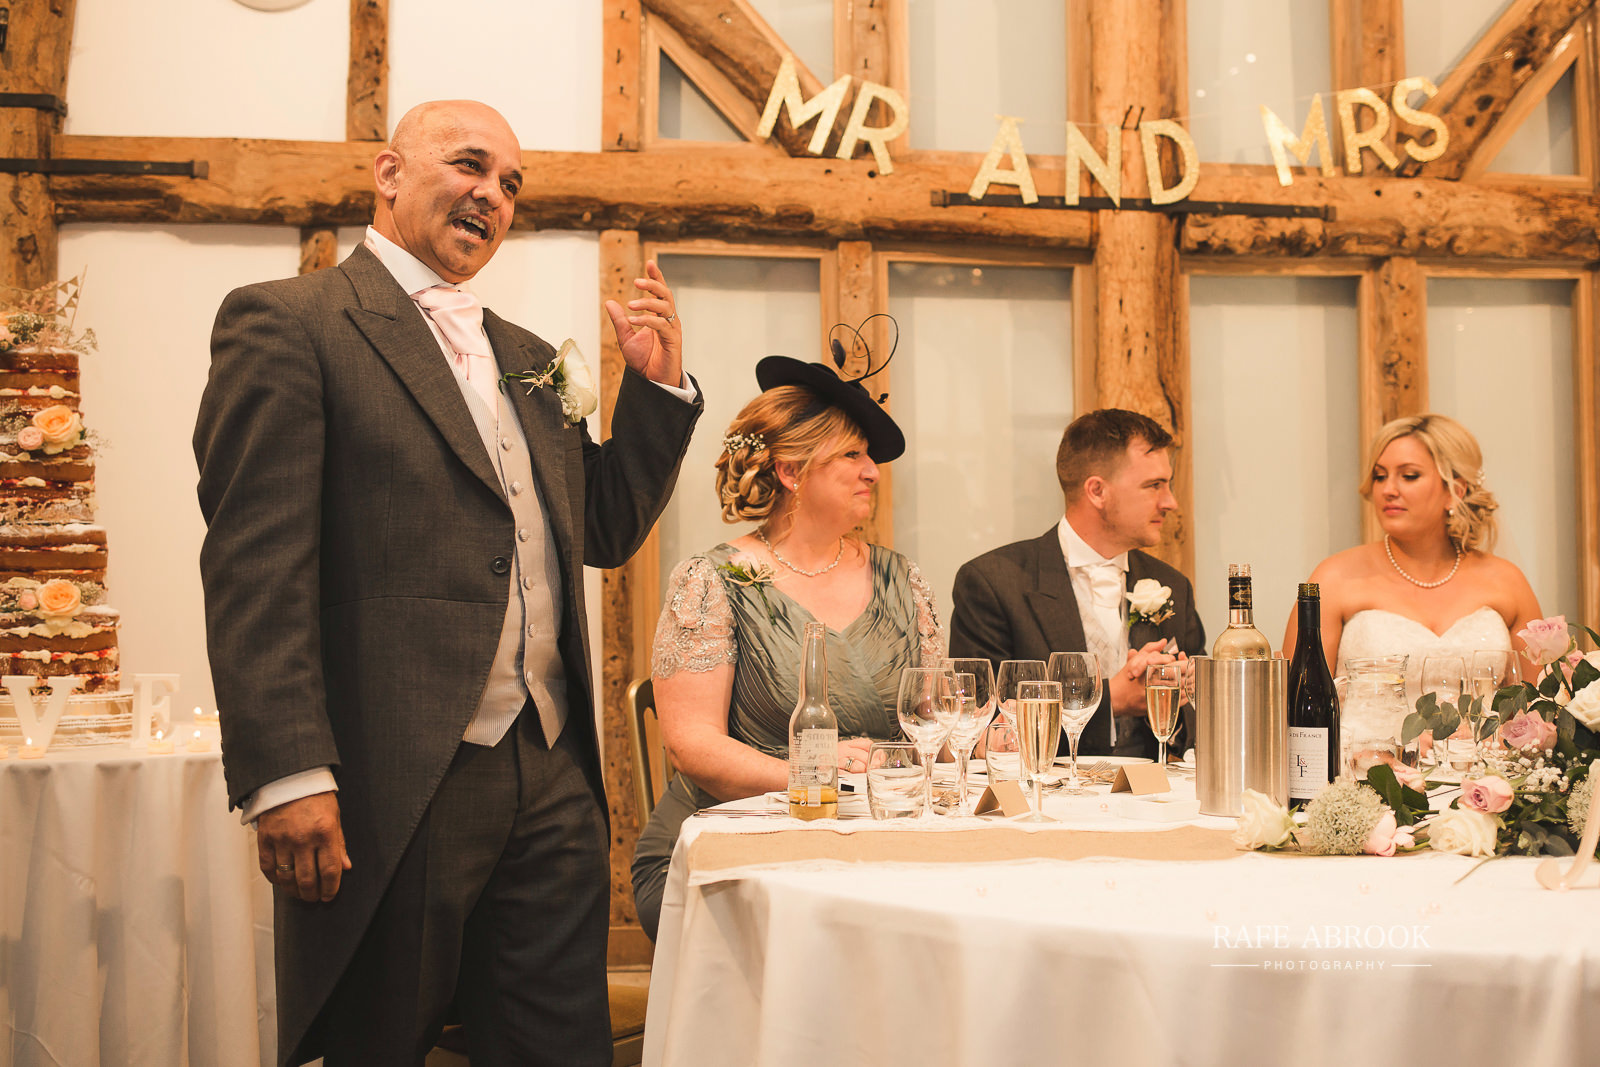 south farm wedding royston hertfordshire wedding photographer rafe abrook photography-1824.jpg